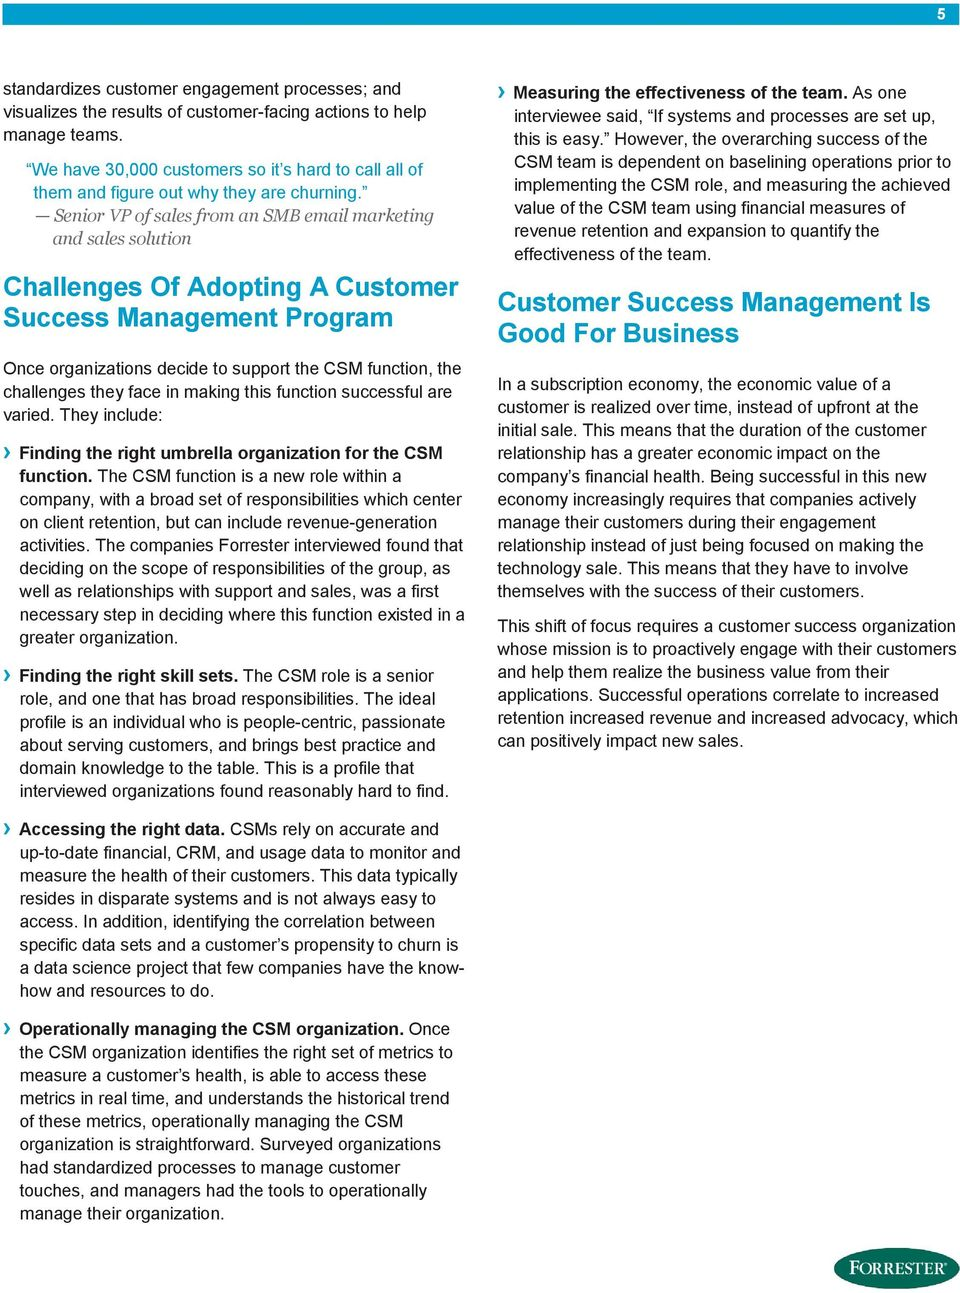 Senior VP of sales from an SMB email marketing and sales solution Challenges Of Adopting A Customer Success Management Program Once organizations decide to support the CSM function, the challenges